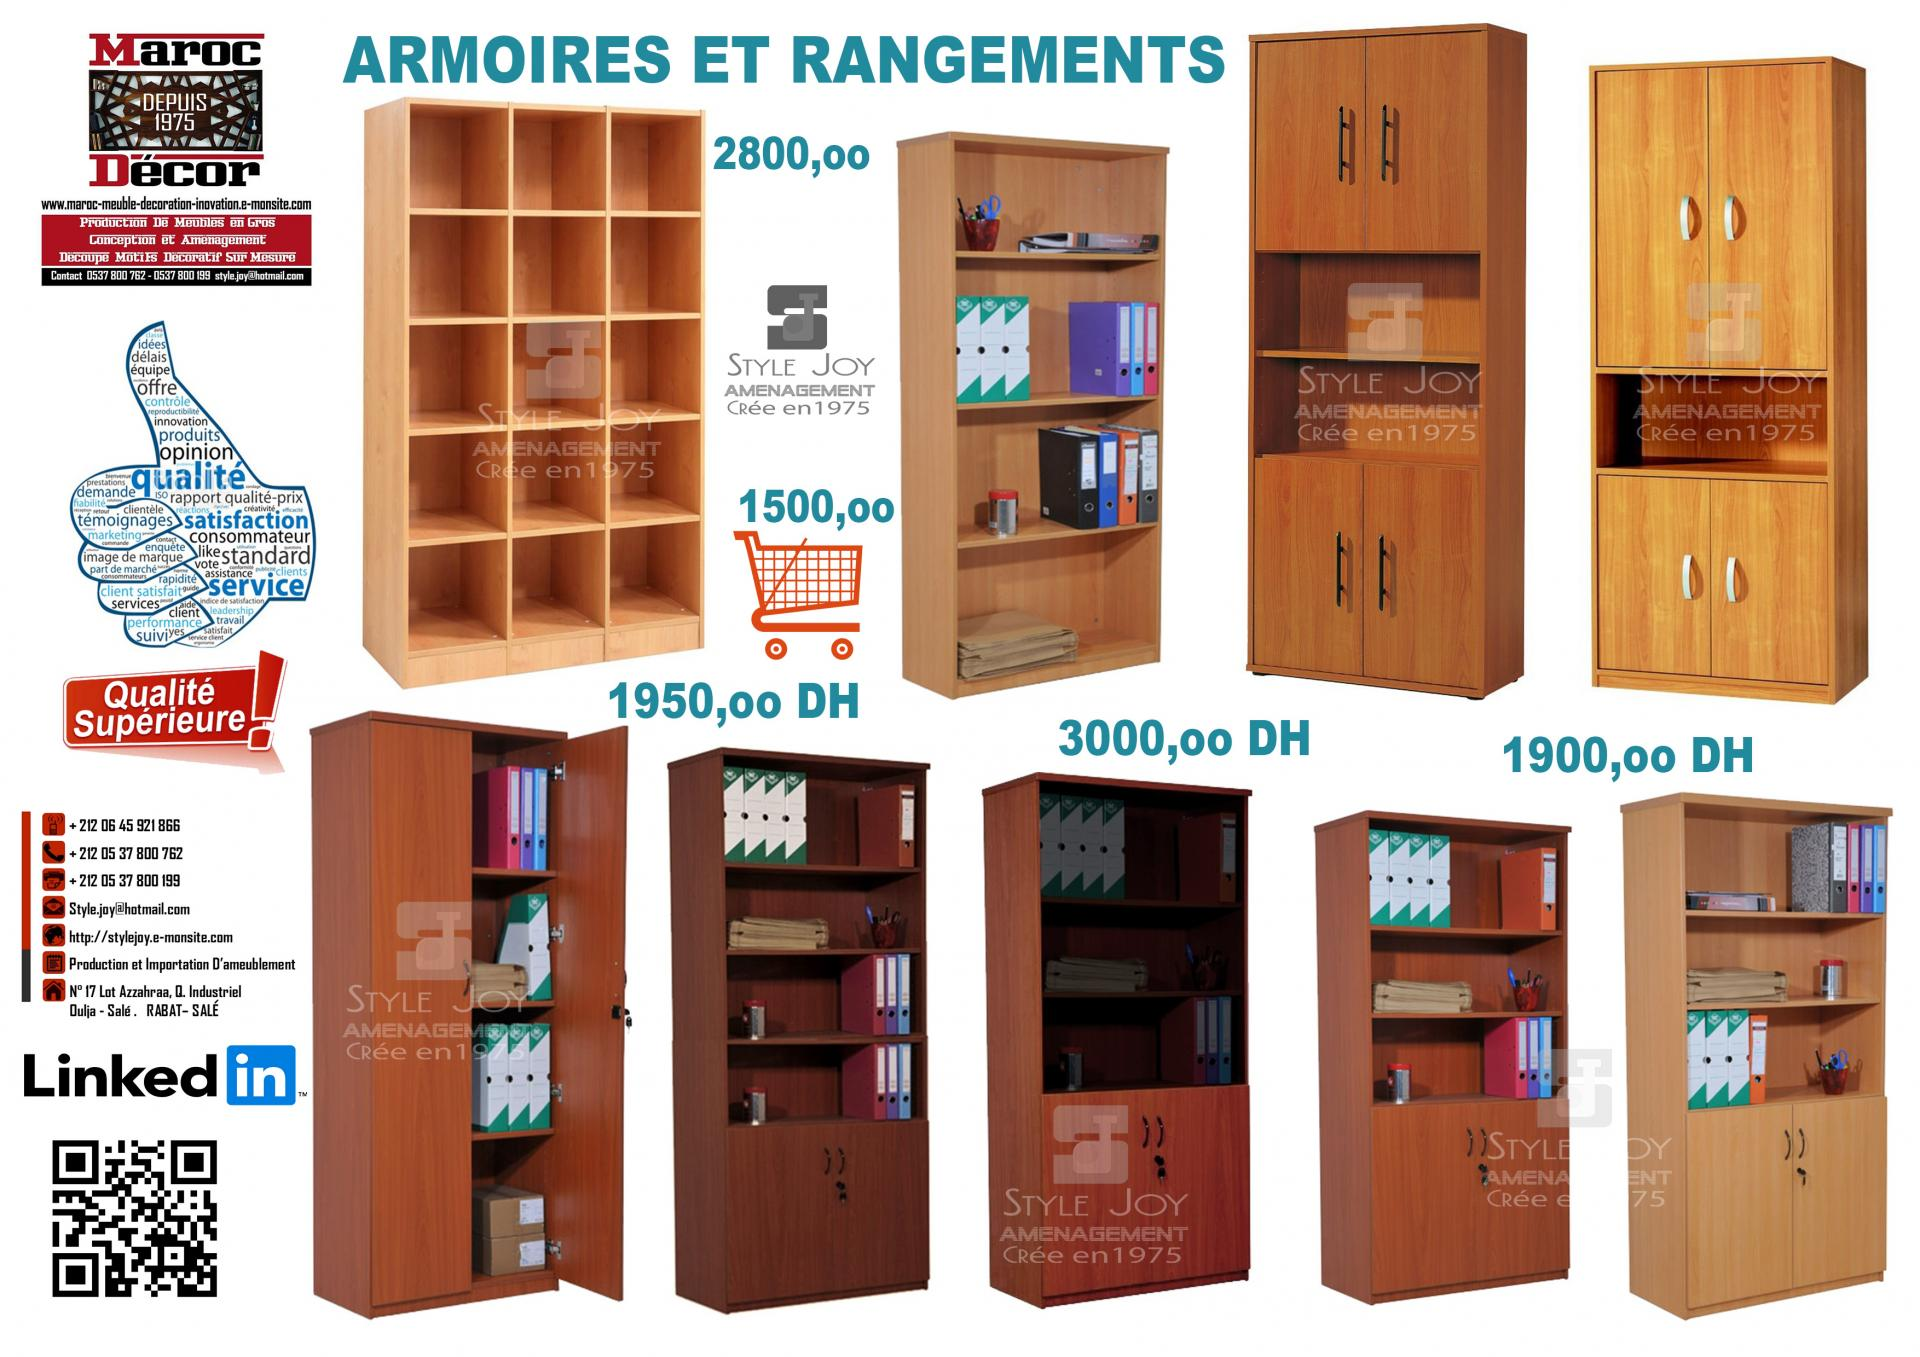 n 1 en mobilier bureau rabat casablanca deco inovation meuble rabat. Black Bedroom Furniture Sets. Home Design Ideas